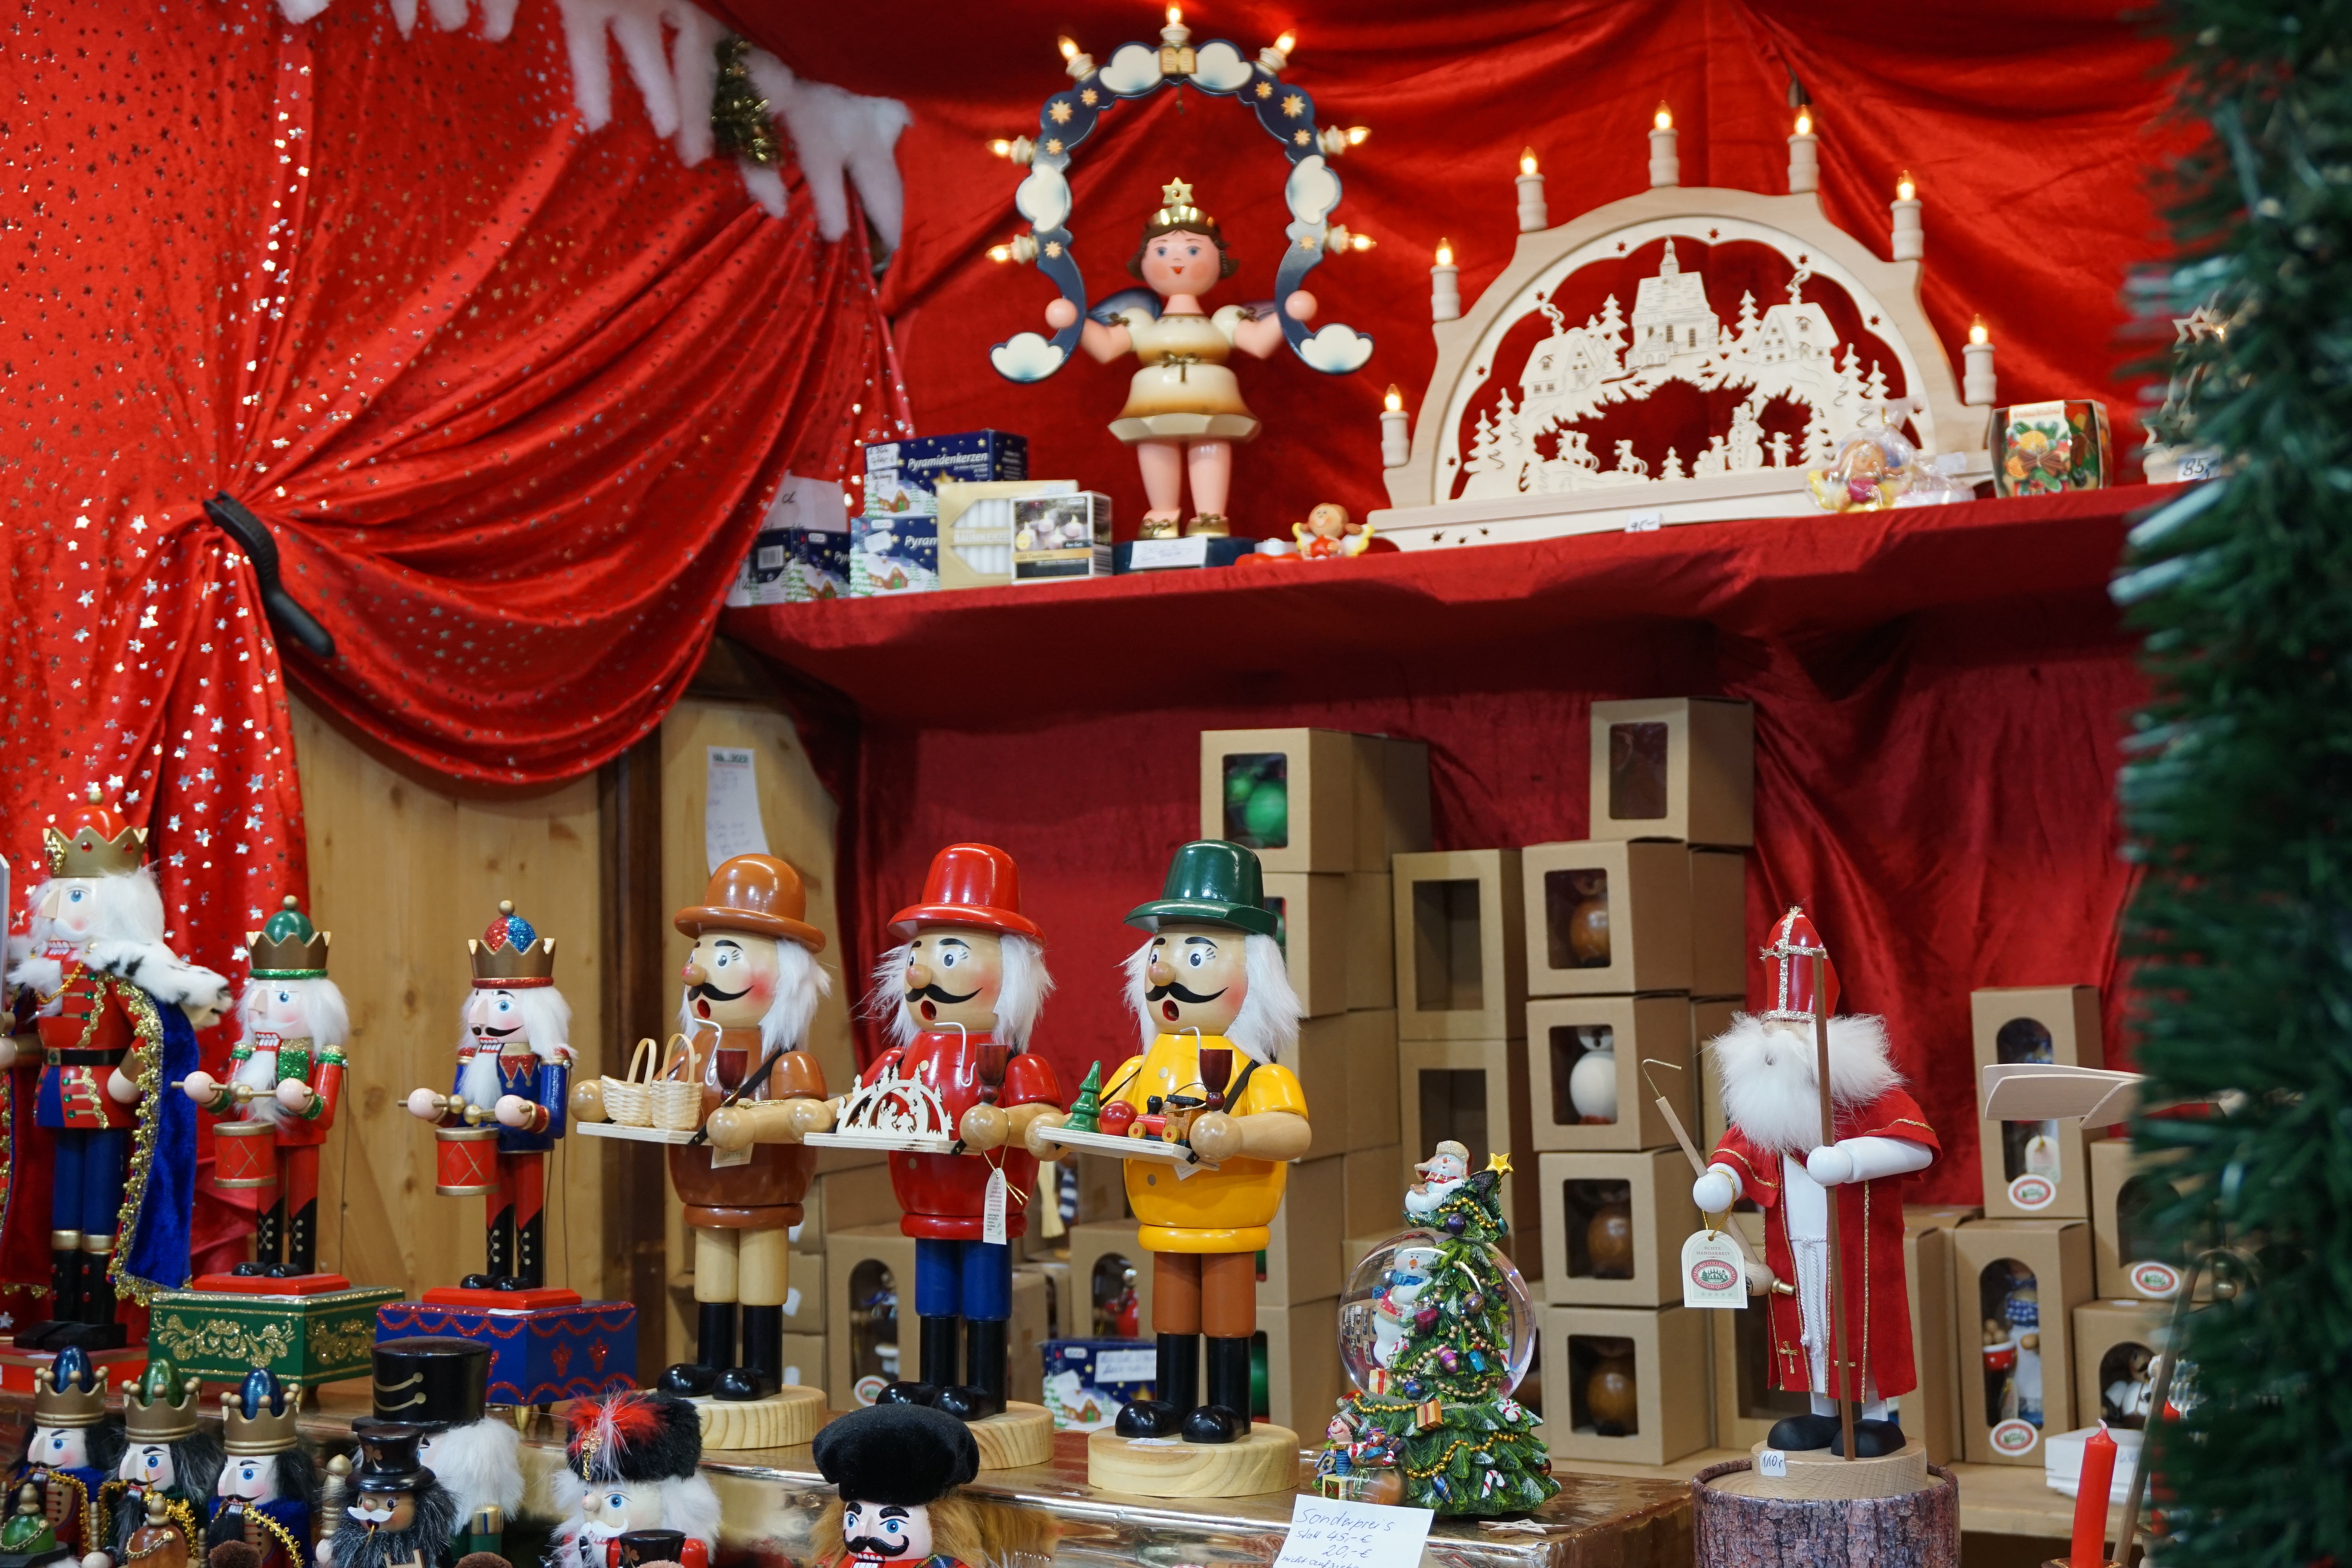 Around The World Decoration Ideas Christmas Break Ideas From Around The World Barehotelier